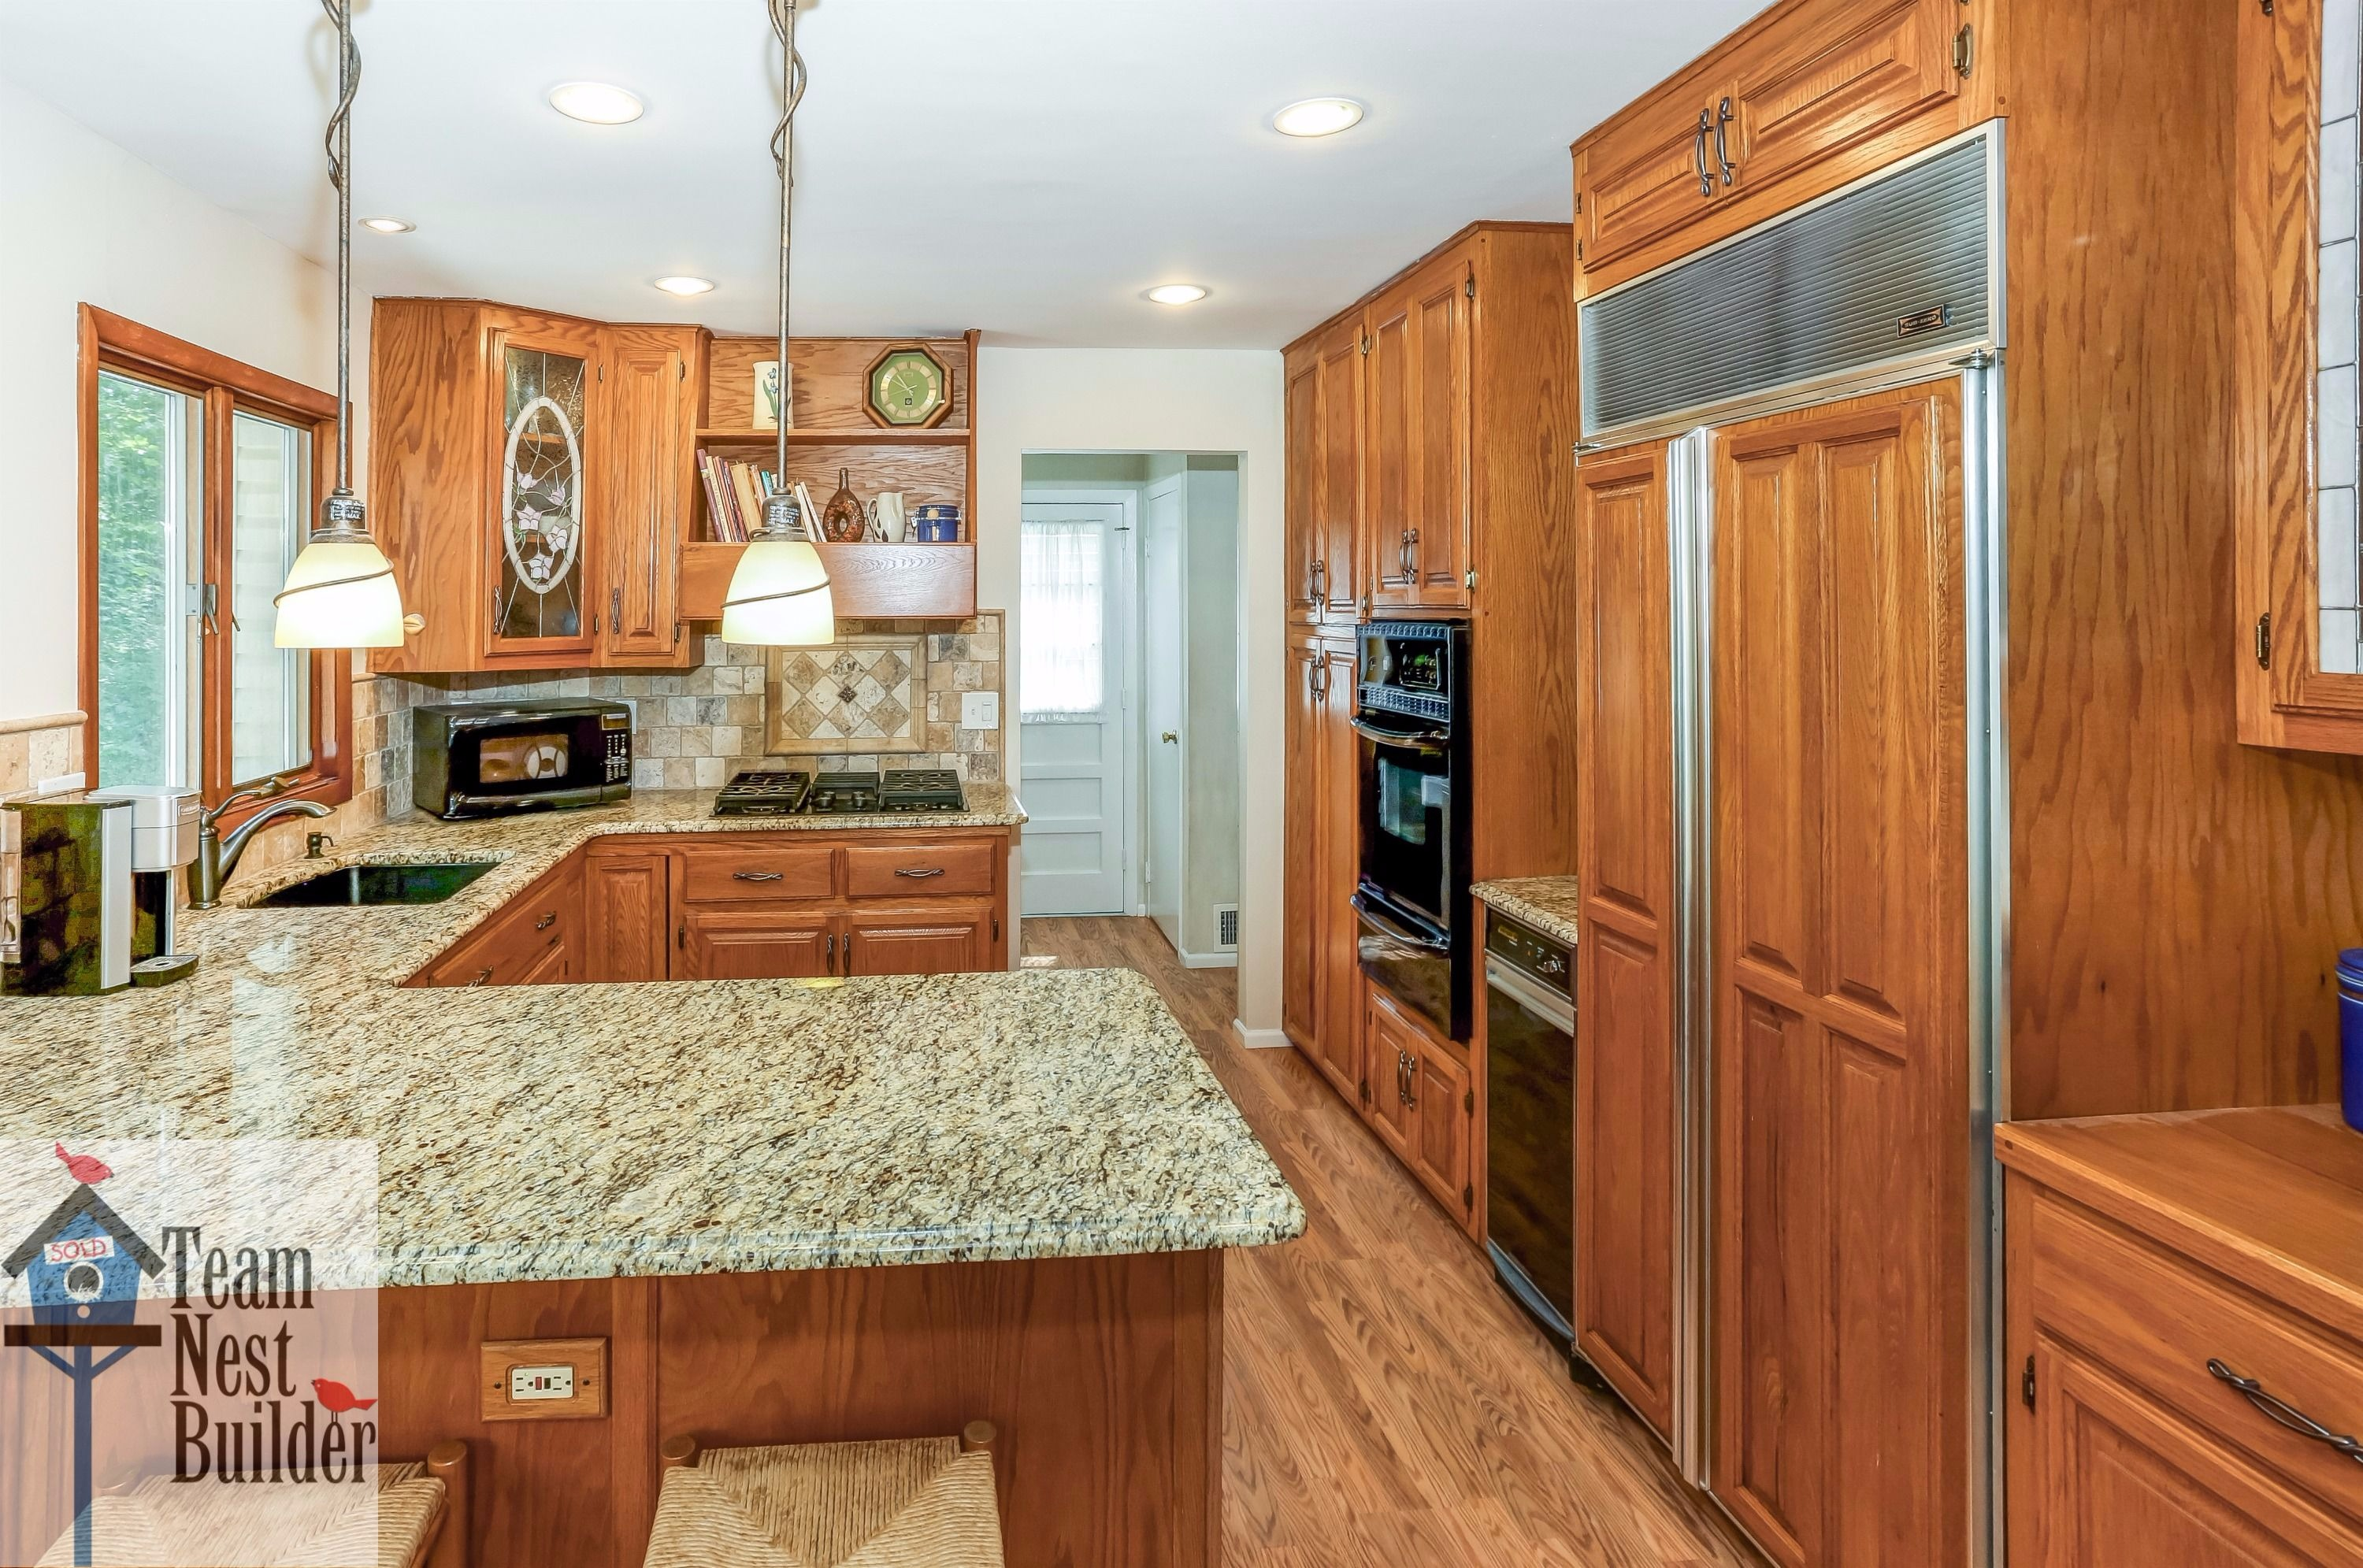 Fantastic updated kitchen with new appliances!